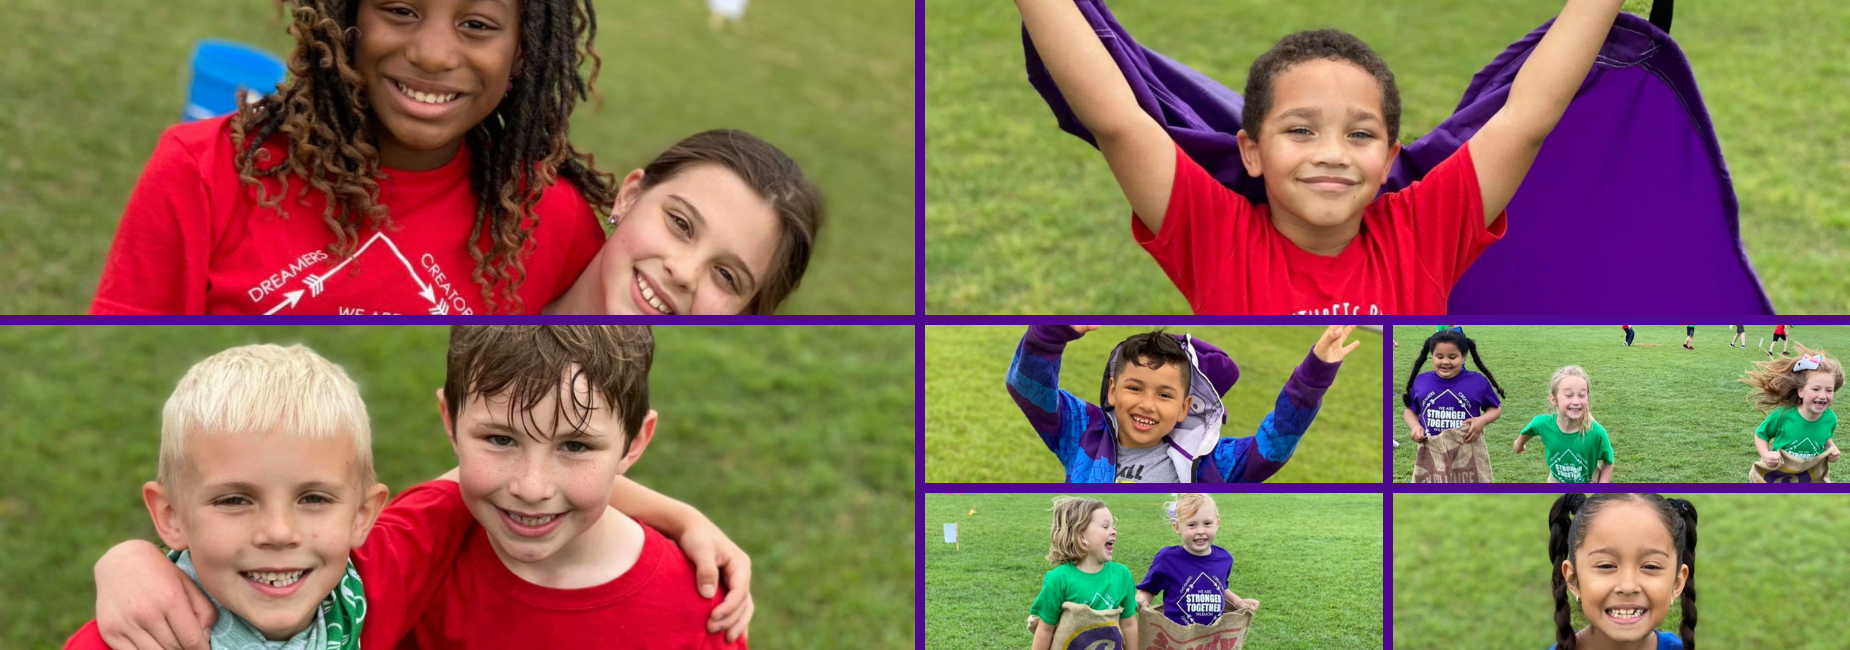 collage of 8 pictures featuring elementary kiddos playing at field day